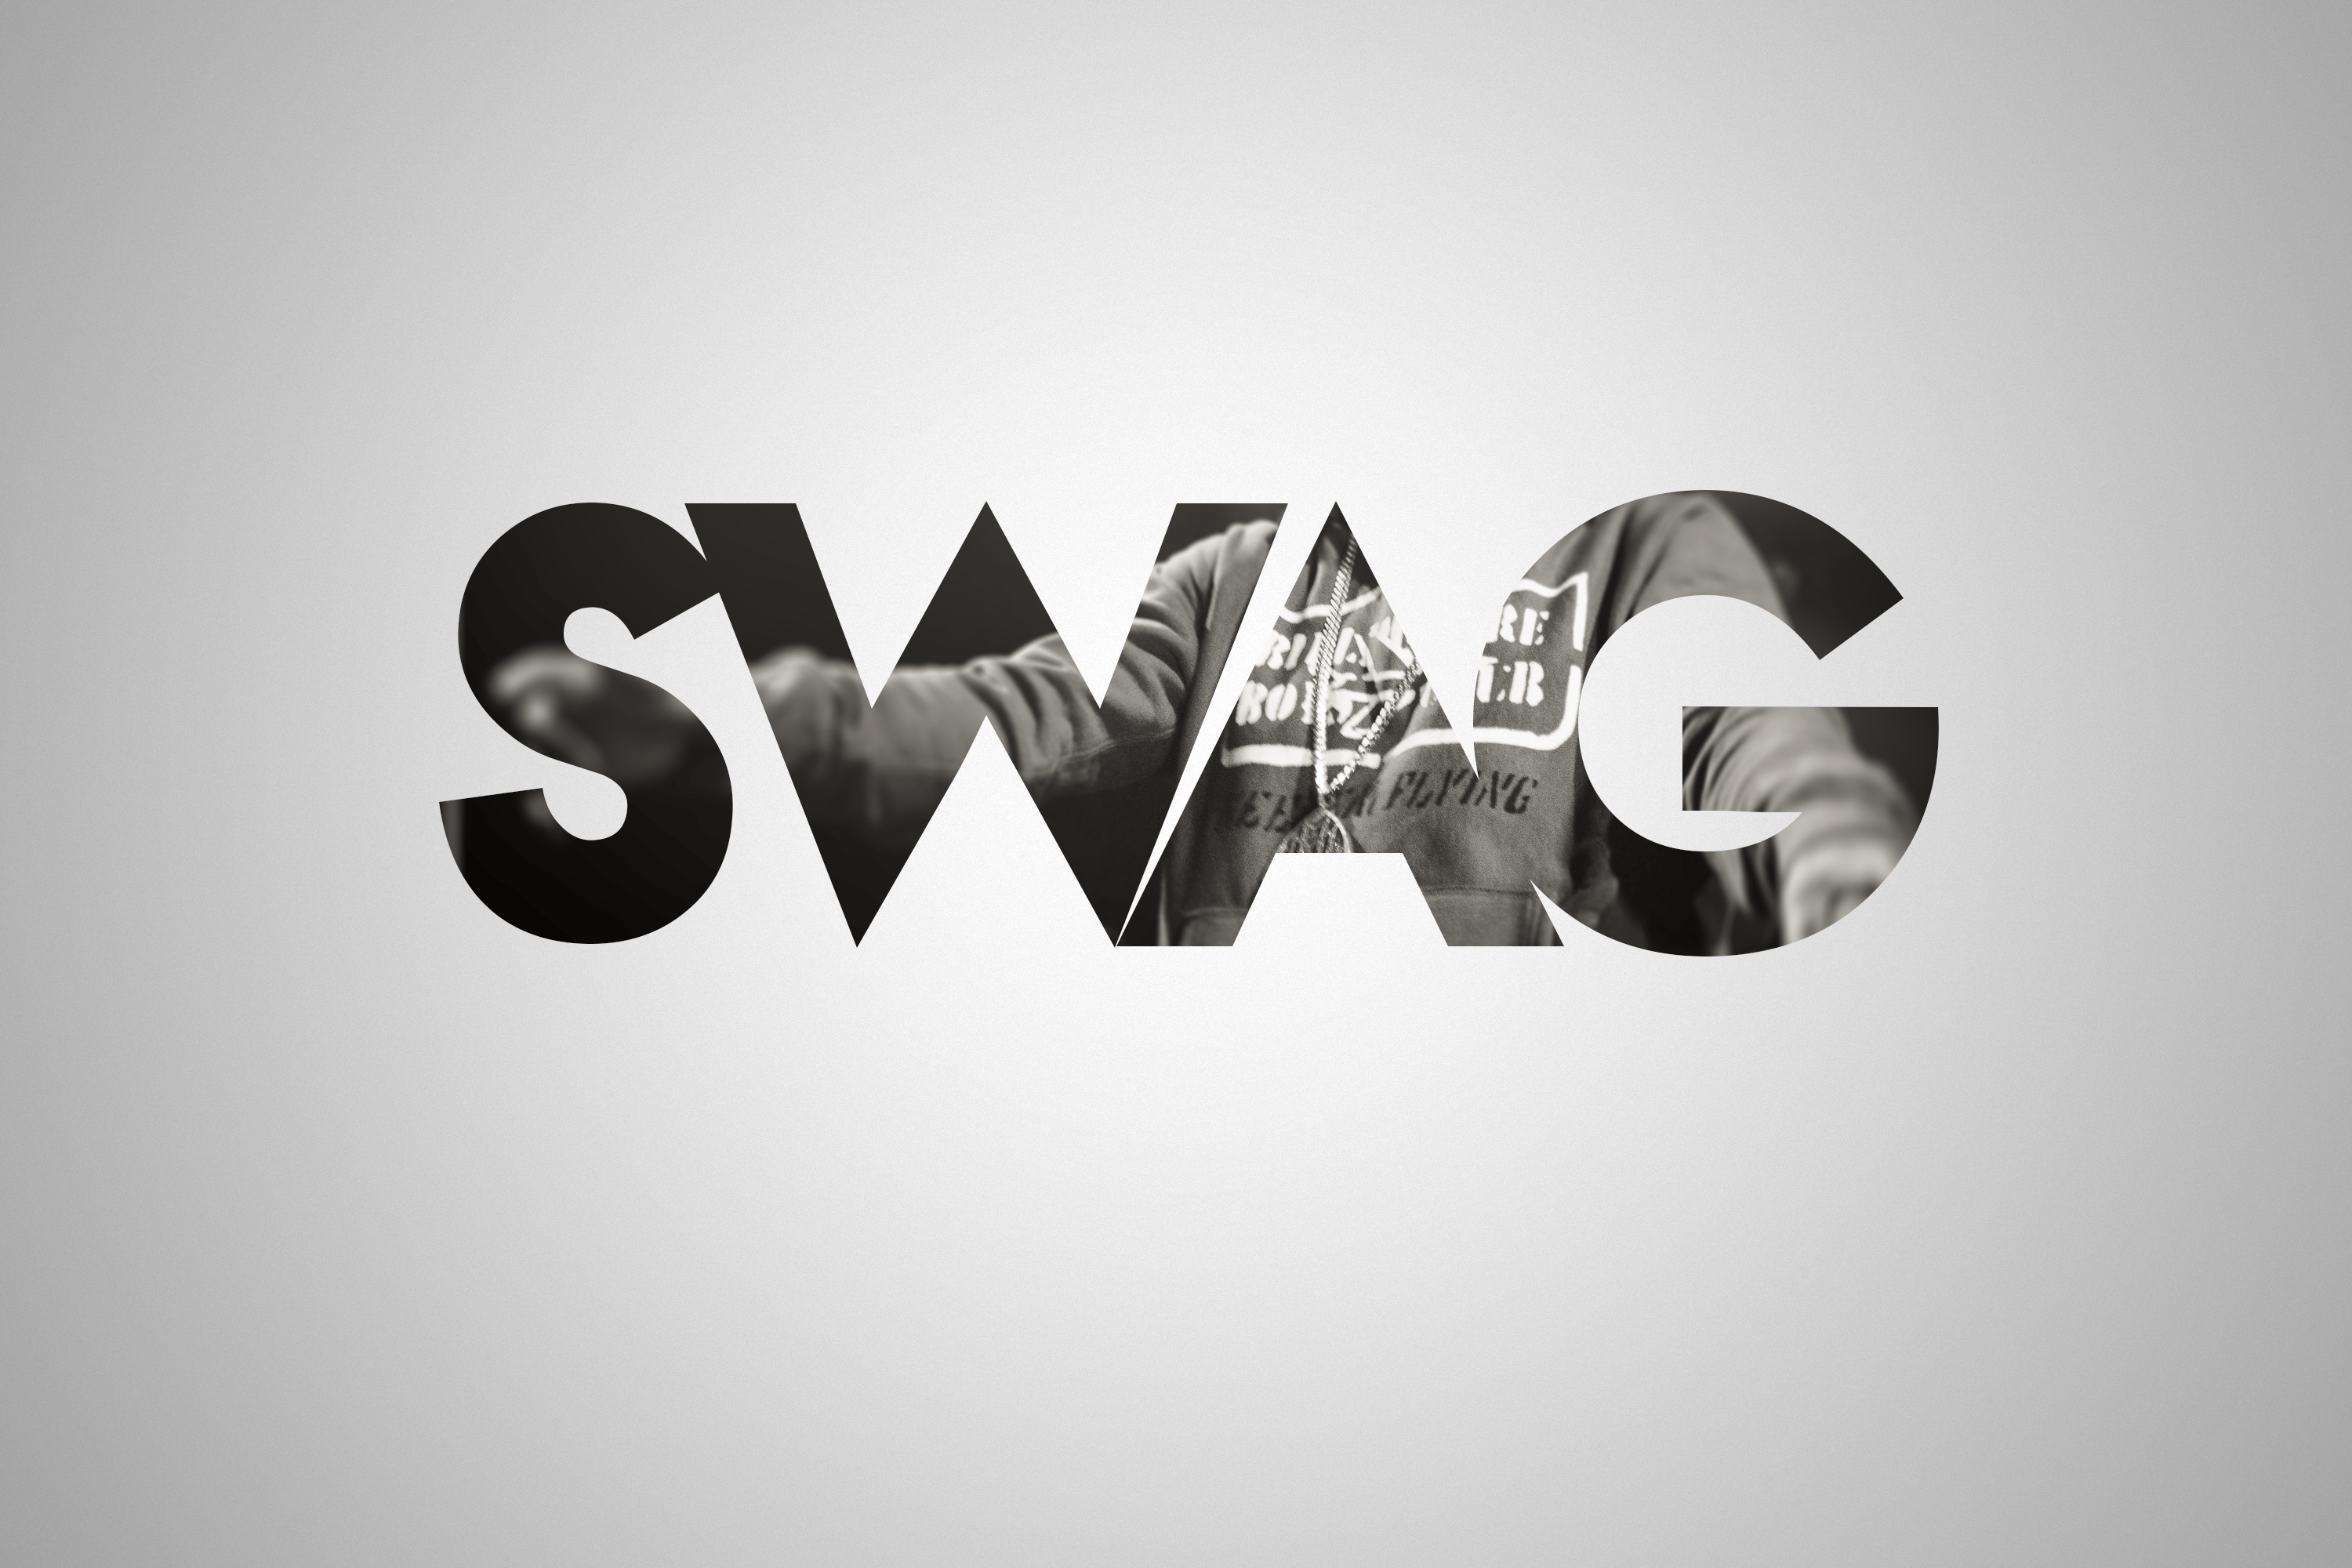 Wallpapers For Swag Wallpaper Cave